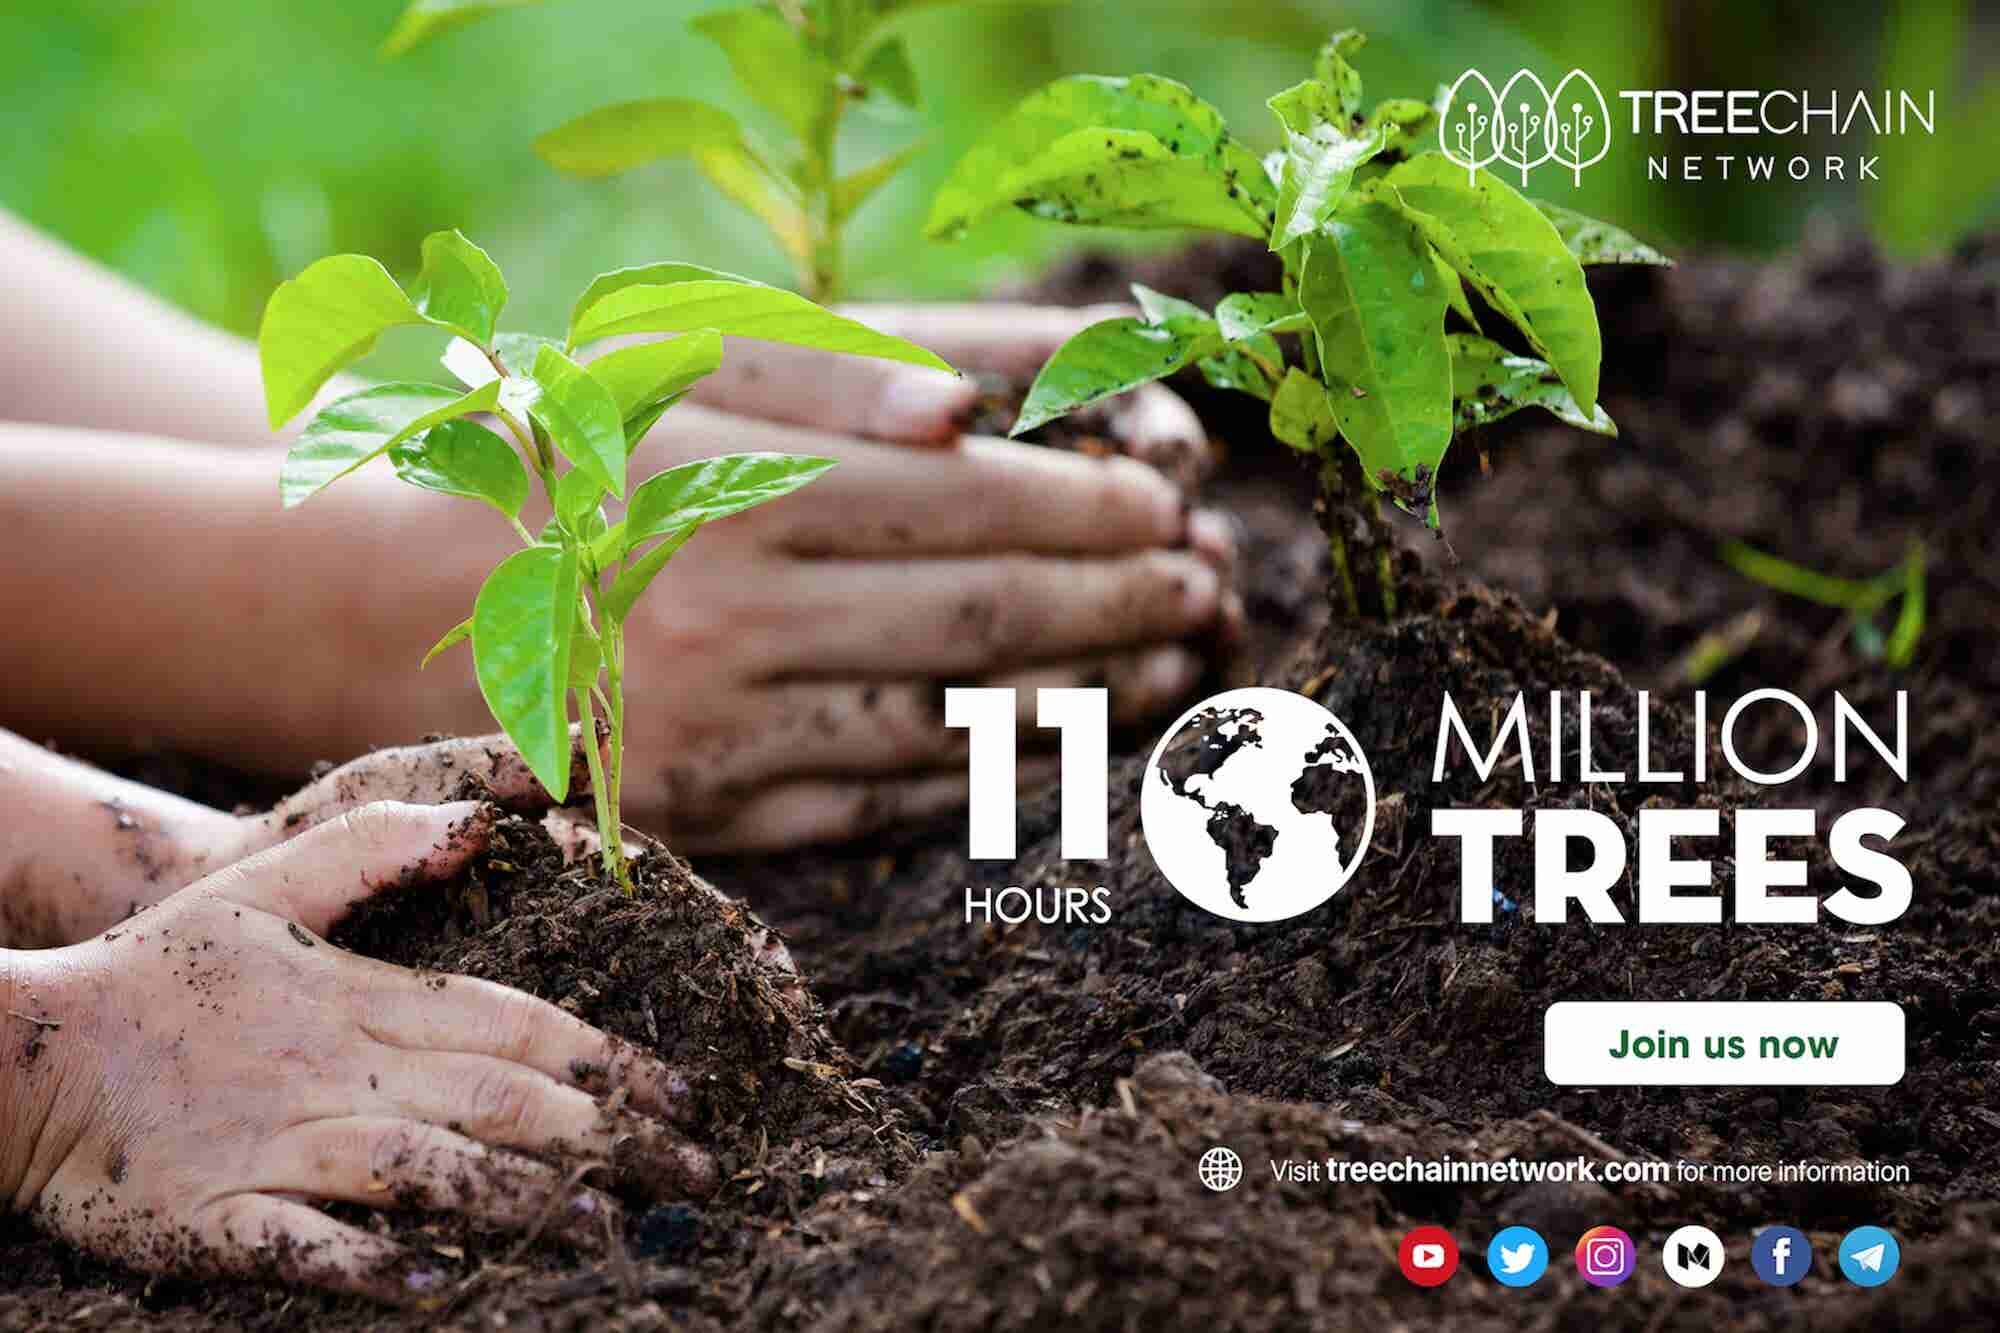 TreeChain Network - Transforming Global Tree Cover through Blockchain Technology